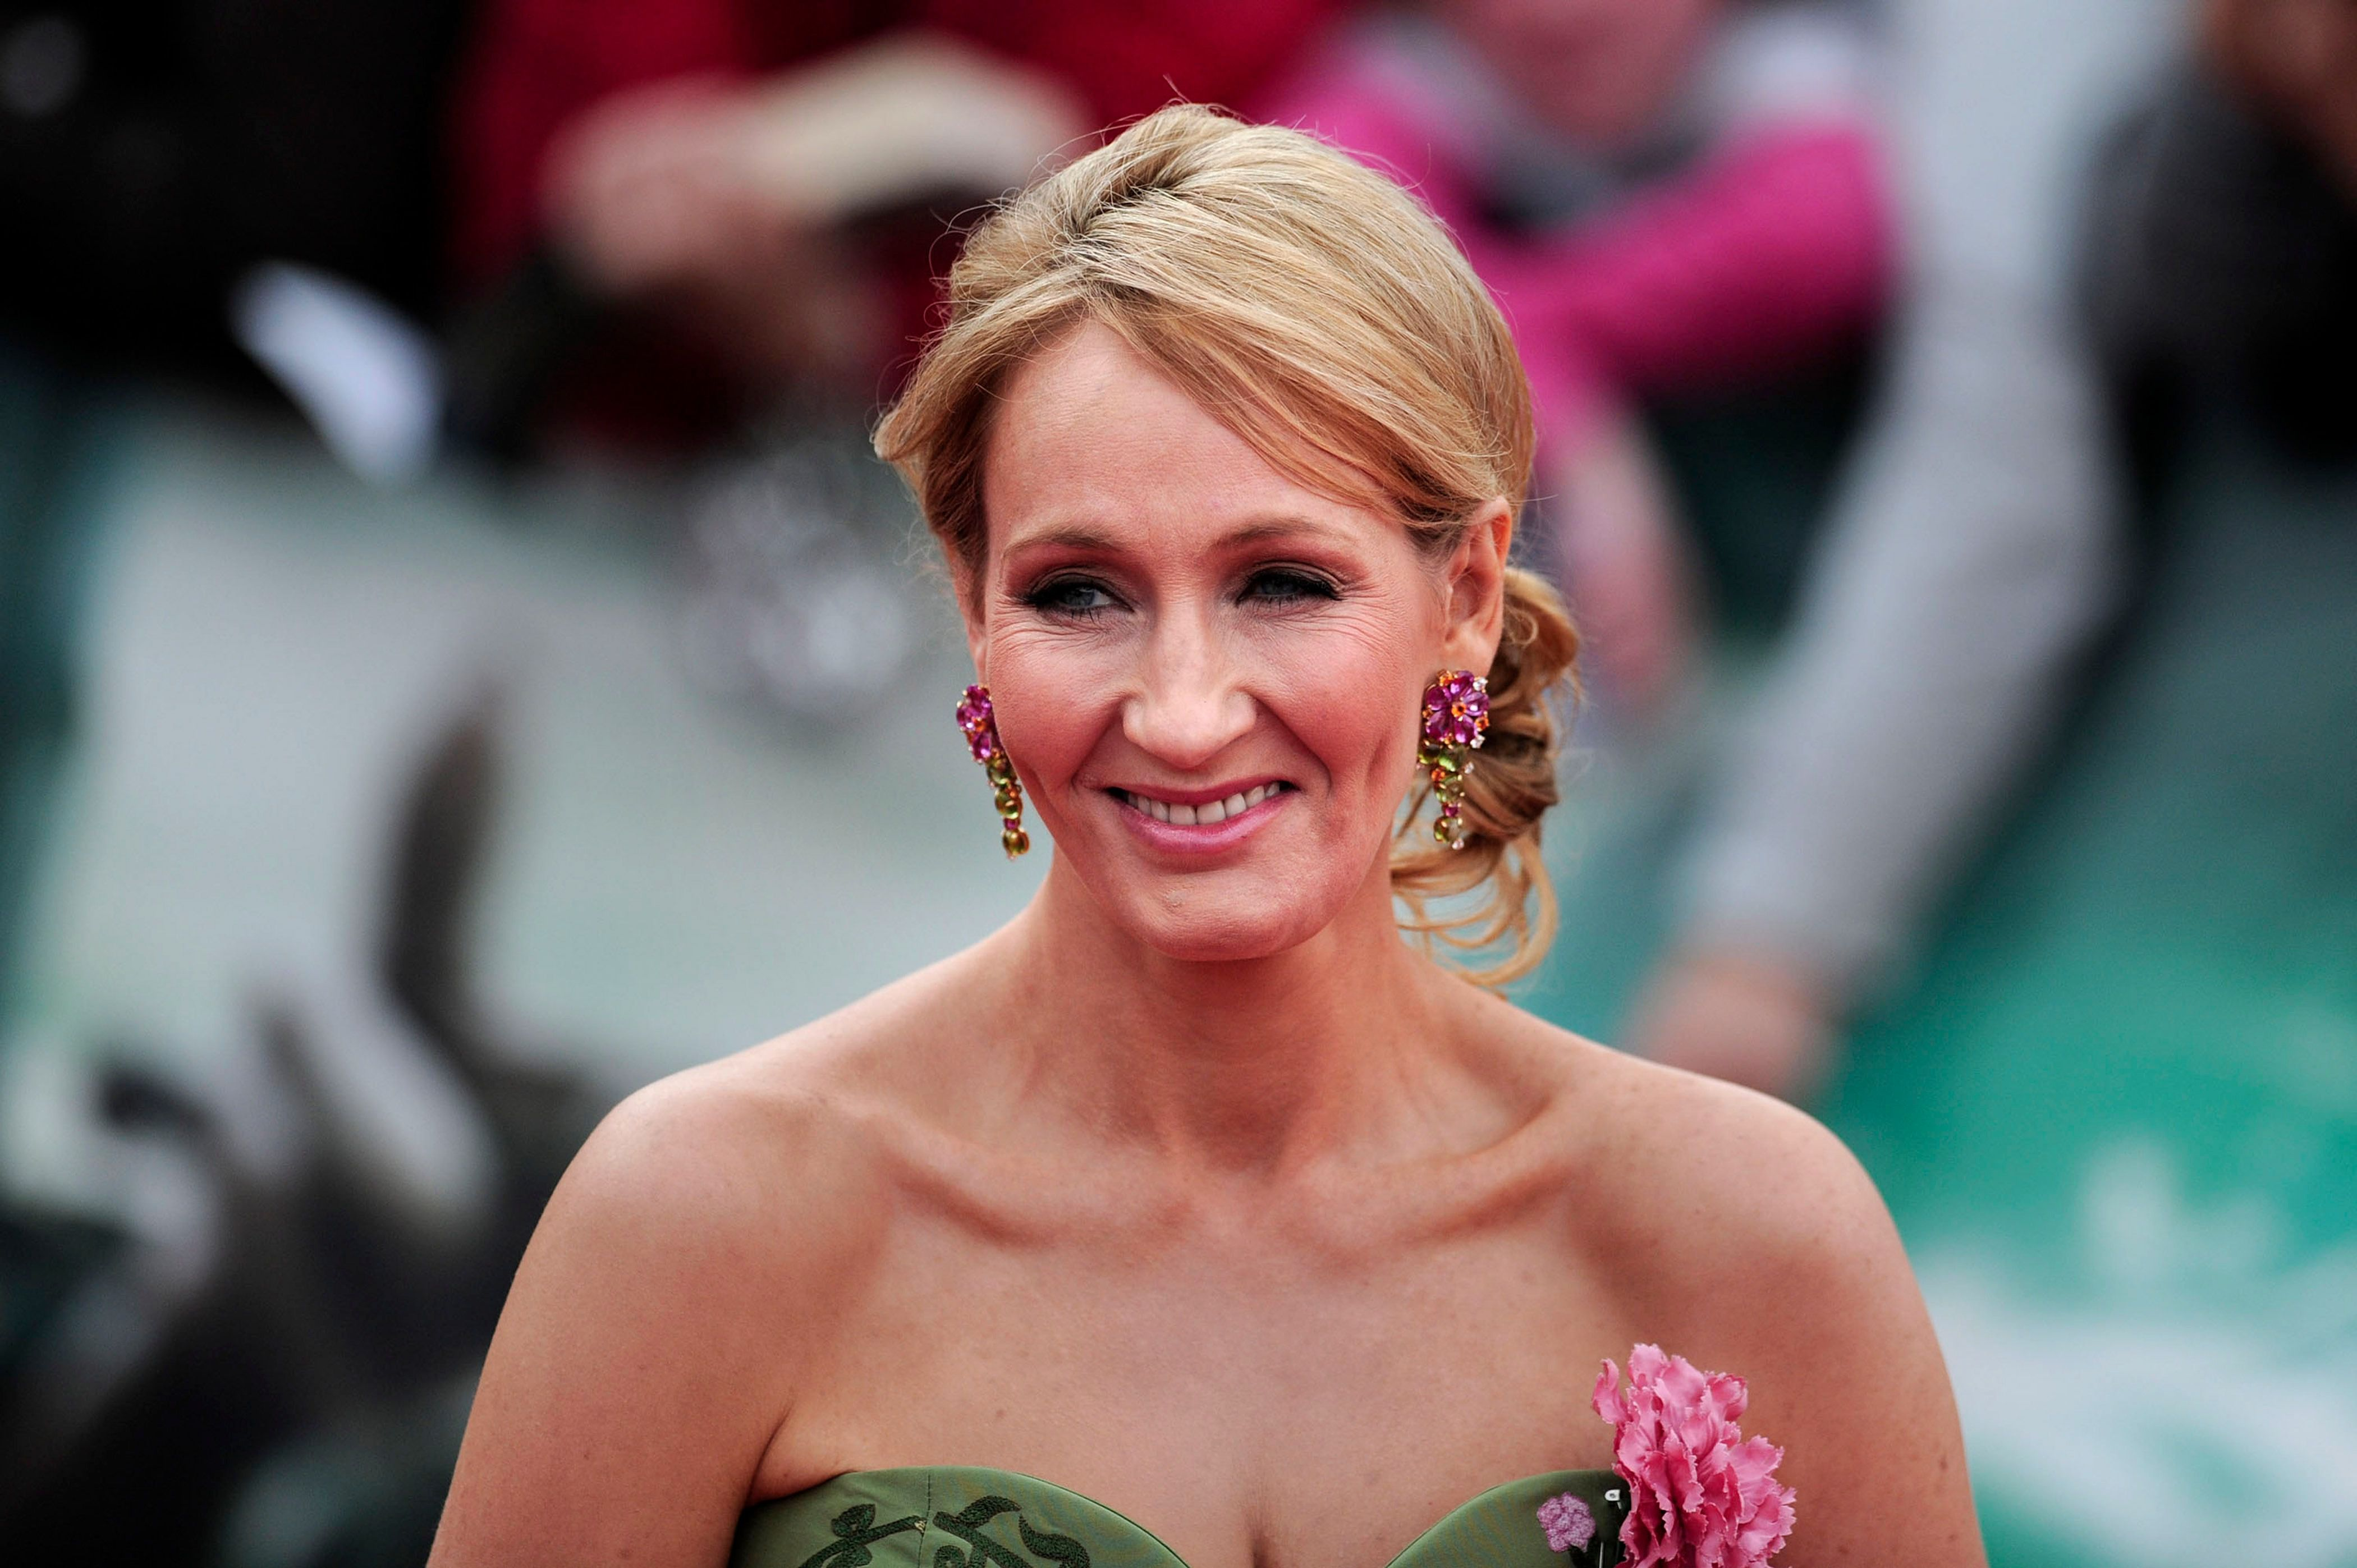 Jk Rowling Has Been Roasting Alt Right Trolls And Its Glorious